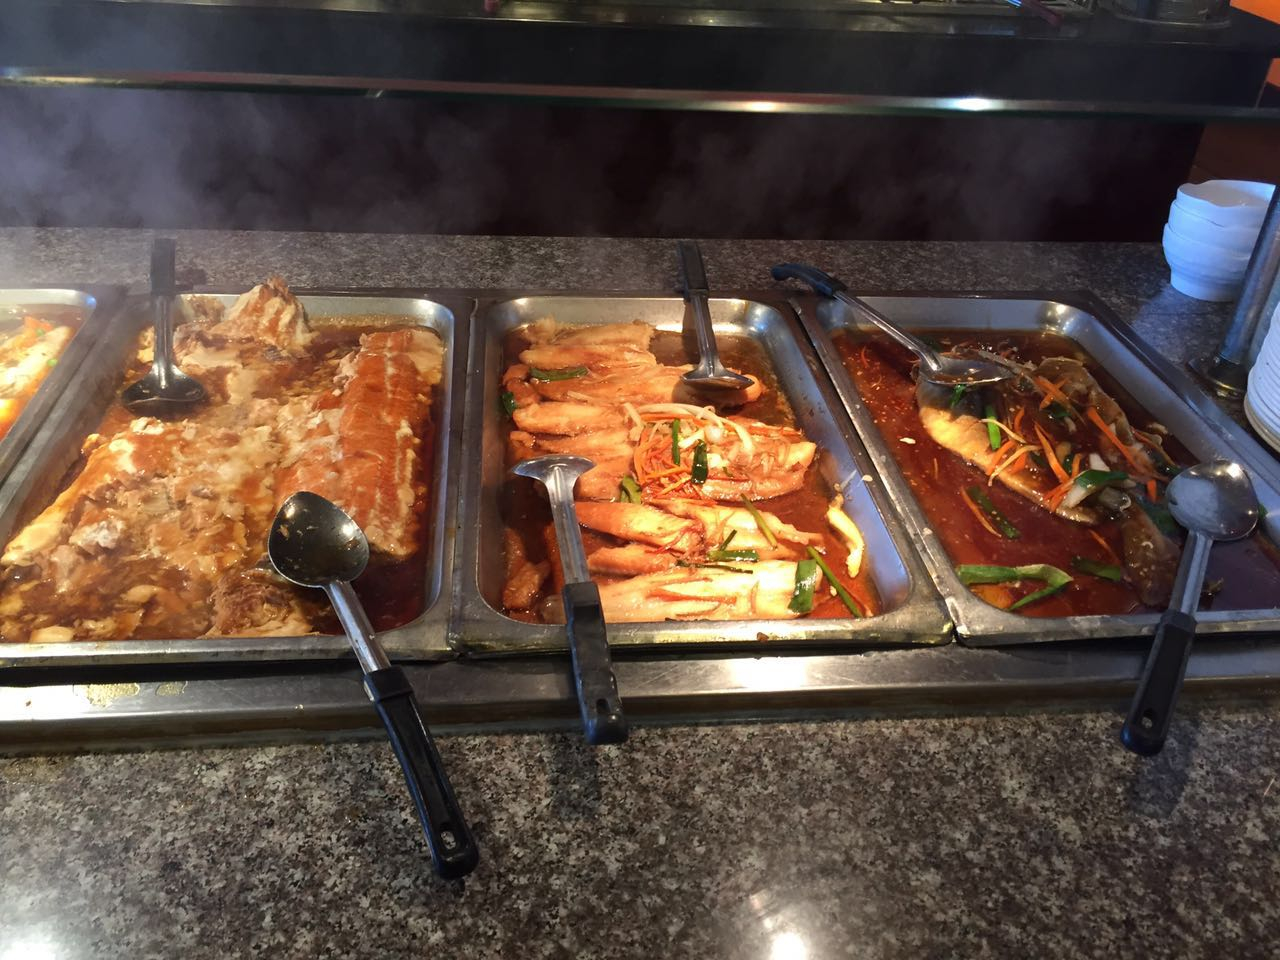 Admirable Kumo Buffet Sushi Seafood Parma Cleveland Oh 44134 Home Interior And Landscaping Oversignezvosmurscom